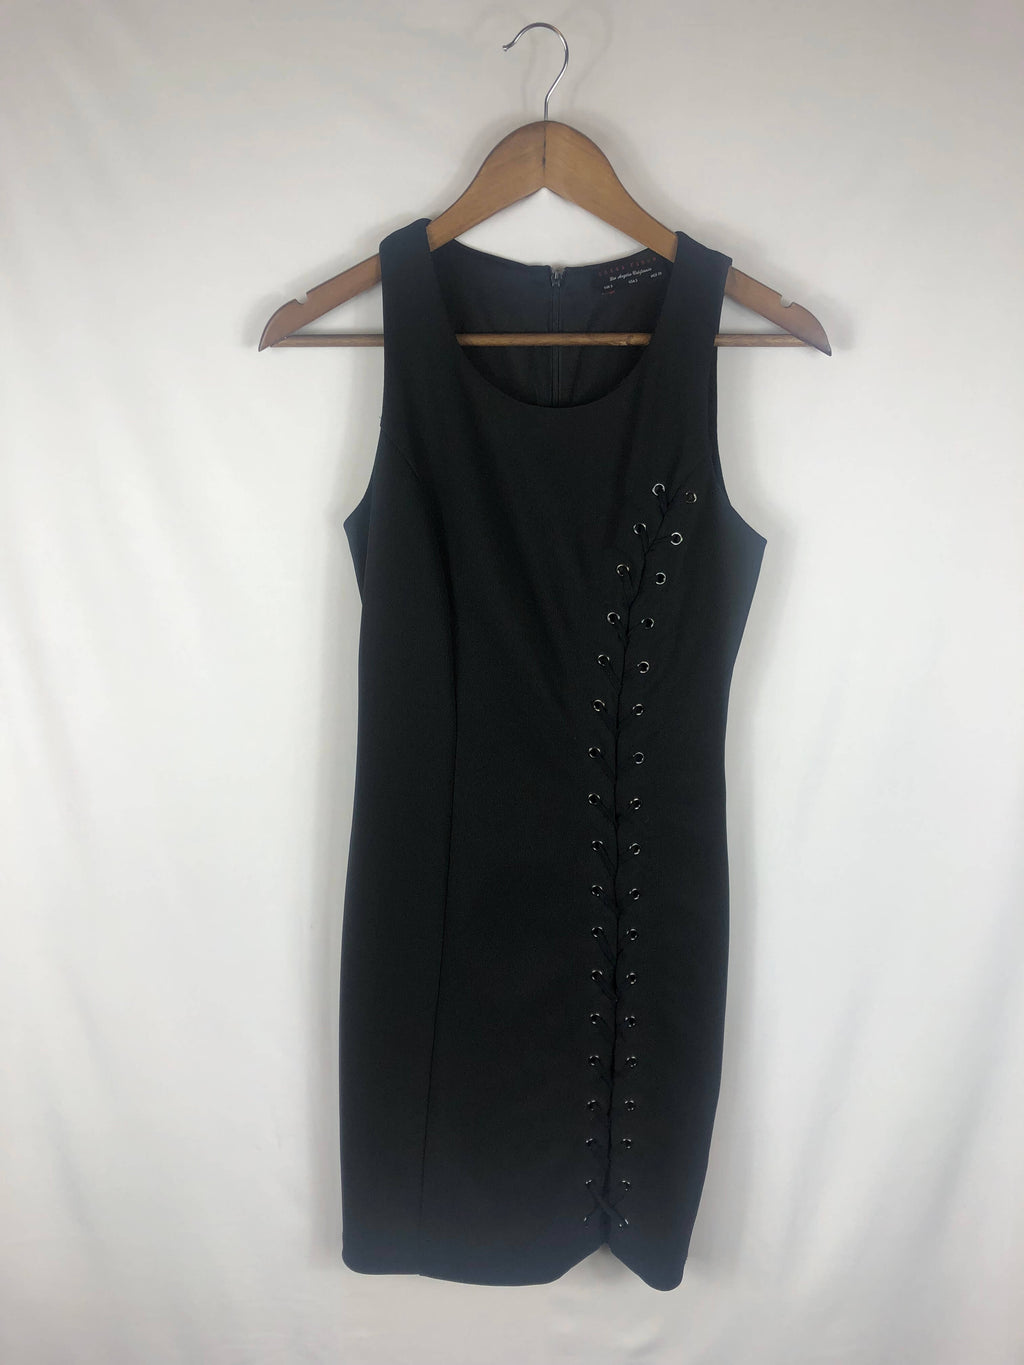 Little Black Dress W/ Lace Up Detailing - Size: Small